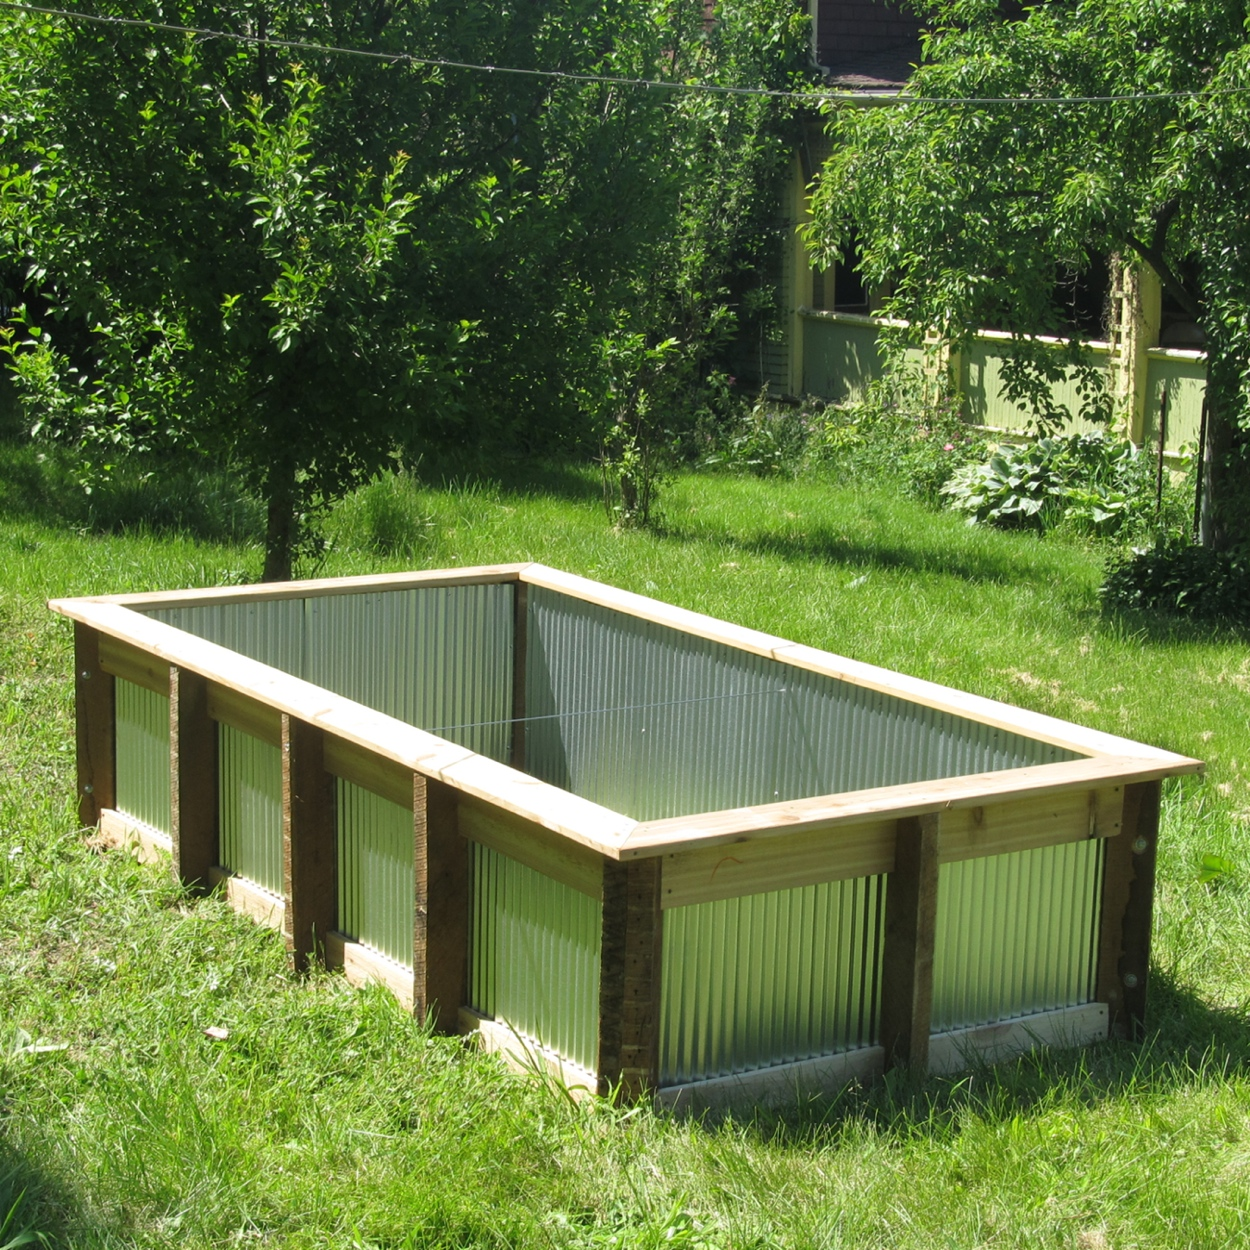 Colorbond Raised Garden Beds Stratco Galvanized Raised Garden Bed Garden Ftempo